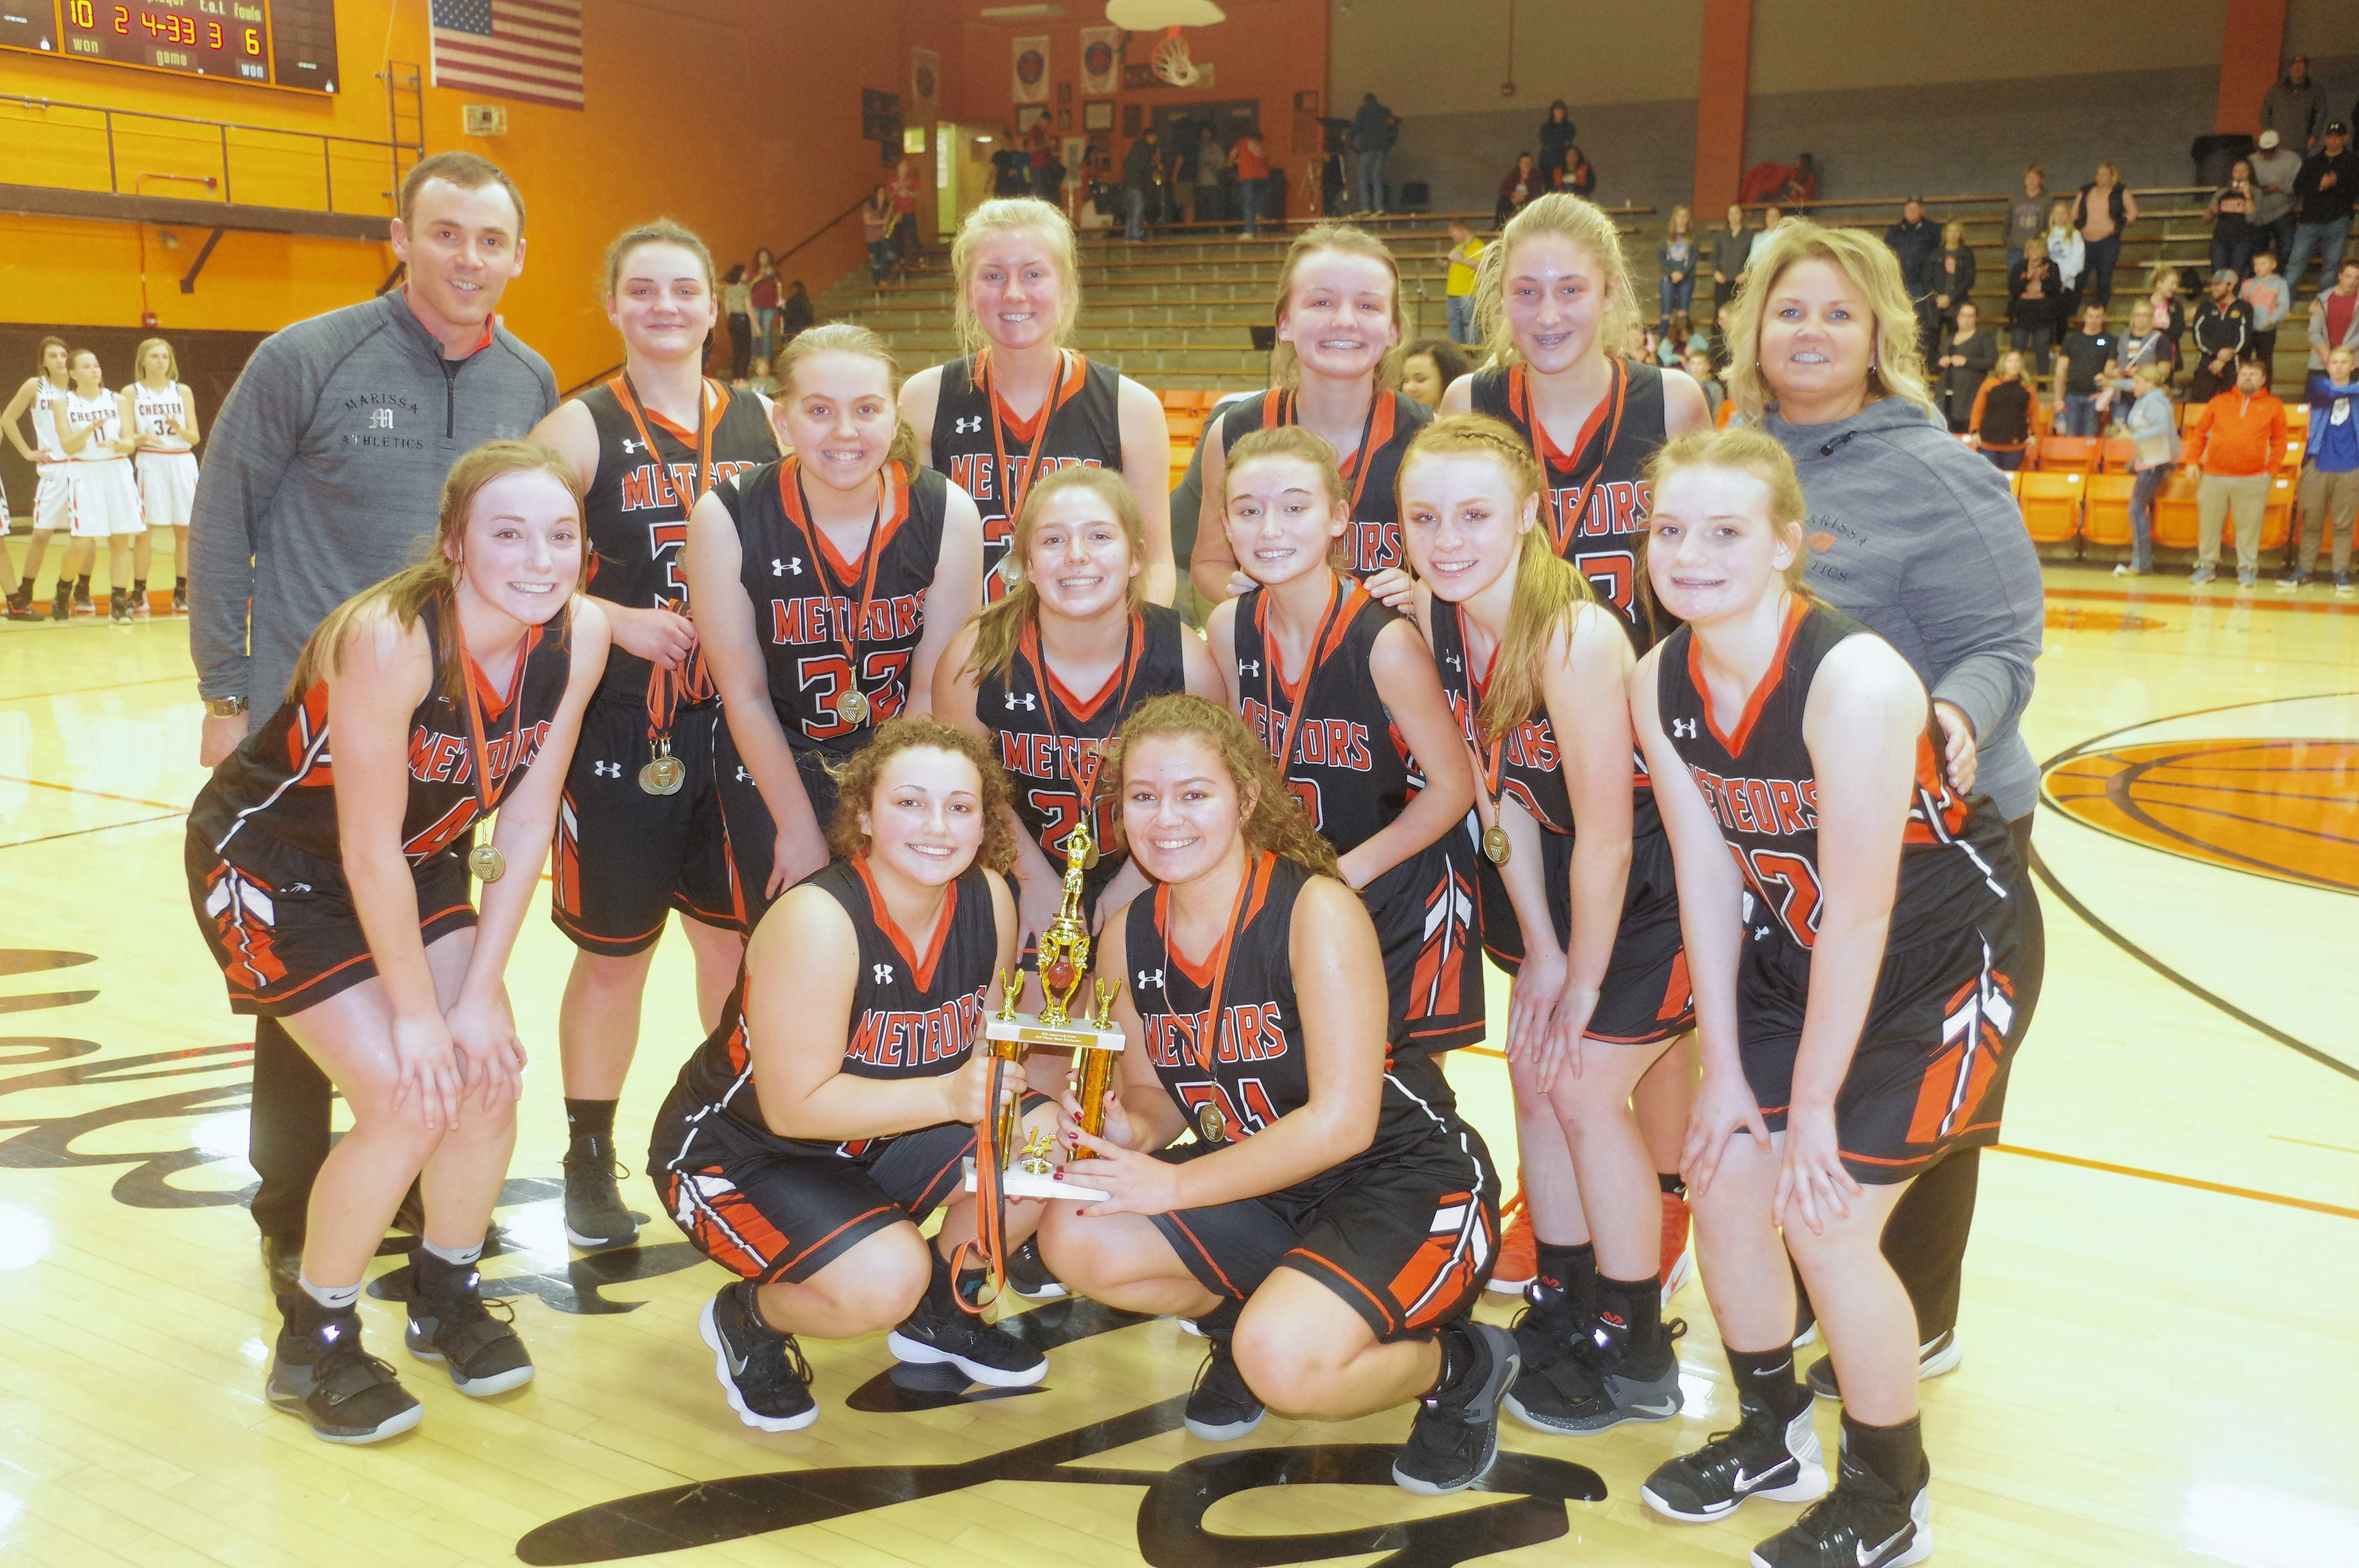 The Marissa-Coulterville Lady Meteors with their championship trophy. members of the team are Emma Walker, Emily Smith, Bree Portz, Kyleigh Landi, Casey Daugherty, Grace Zimmer, Grace Middendorf, Olivia Quigley, Taylor Wyninegar, Hailey Krause, Macey Schreiber, and Destiny Griffith.The Lady Meteors are coached by Darin Degenhart and Laura Kohrs-Robinson.